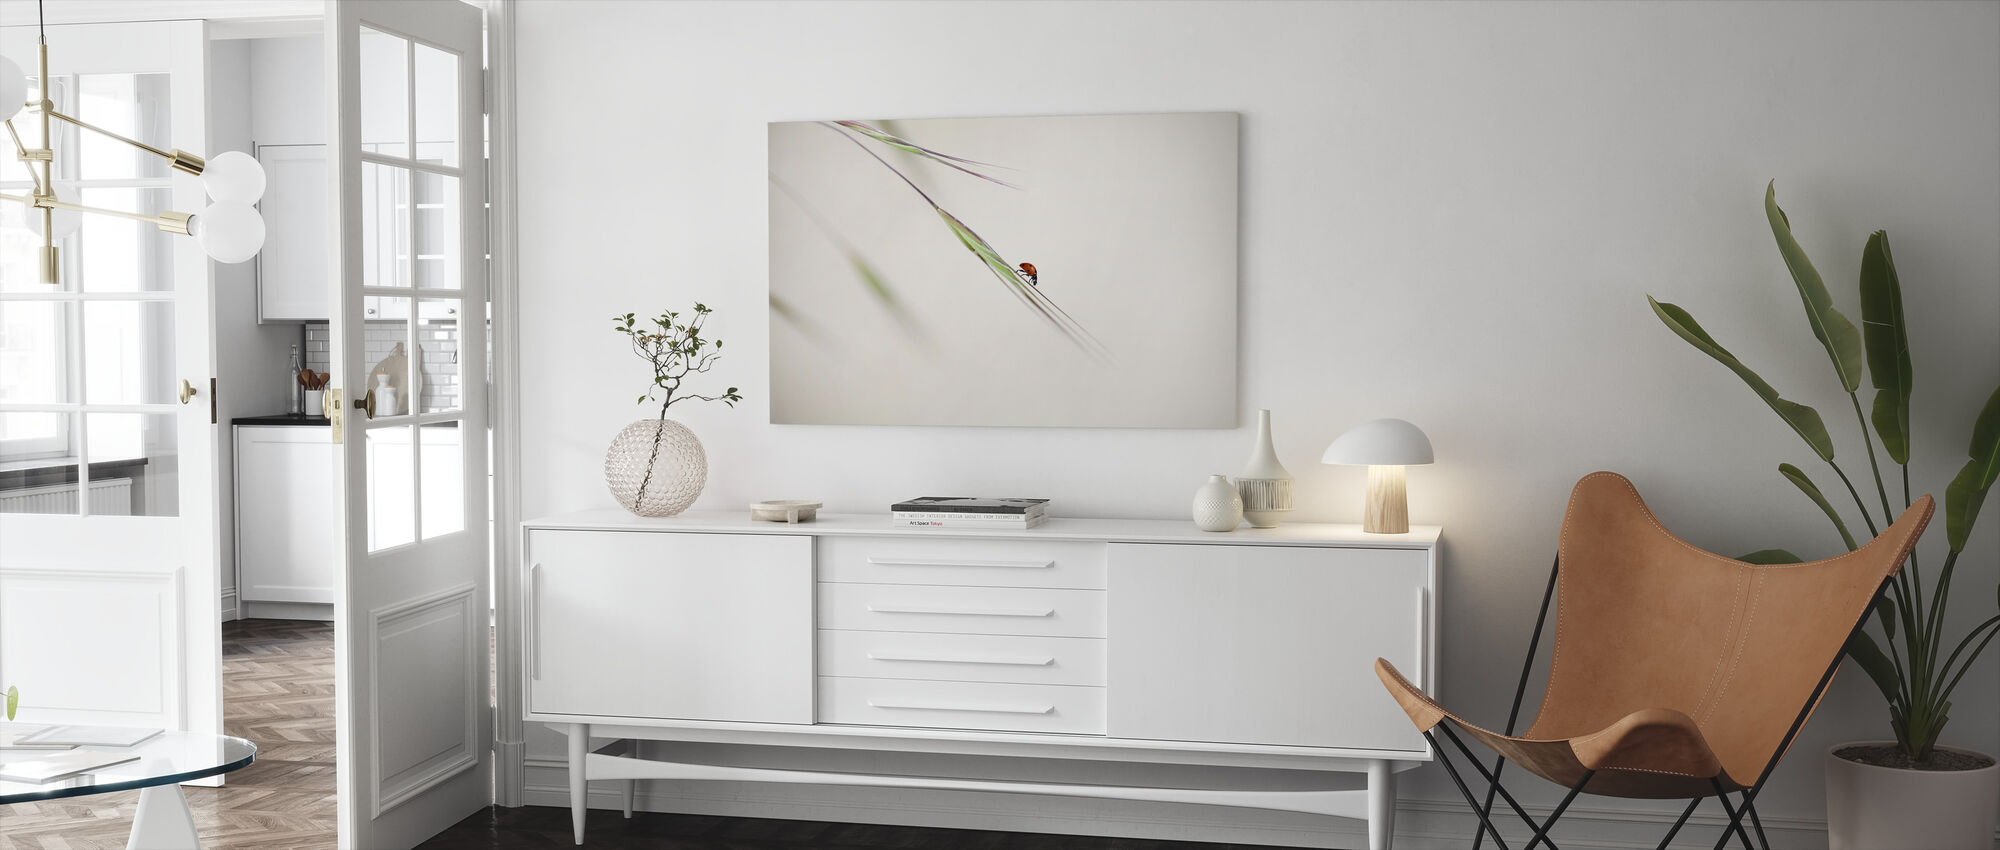 Ladybug in Focus - Canvas print - Living Room